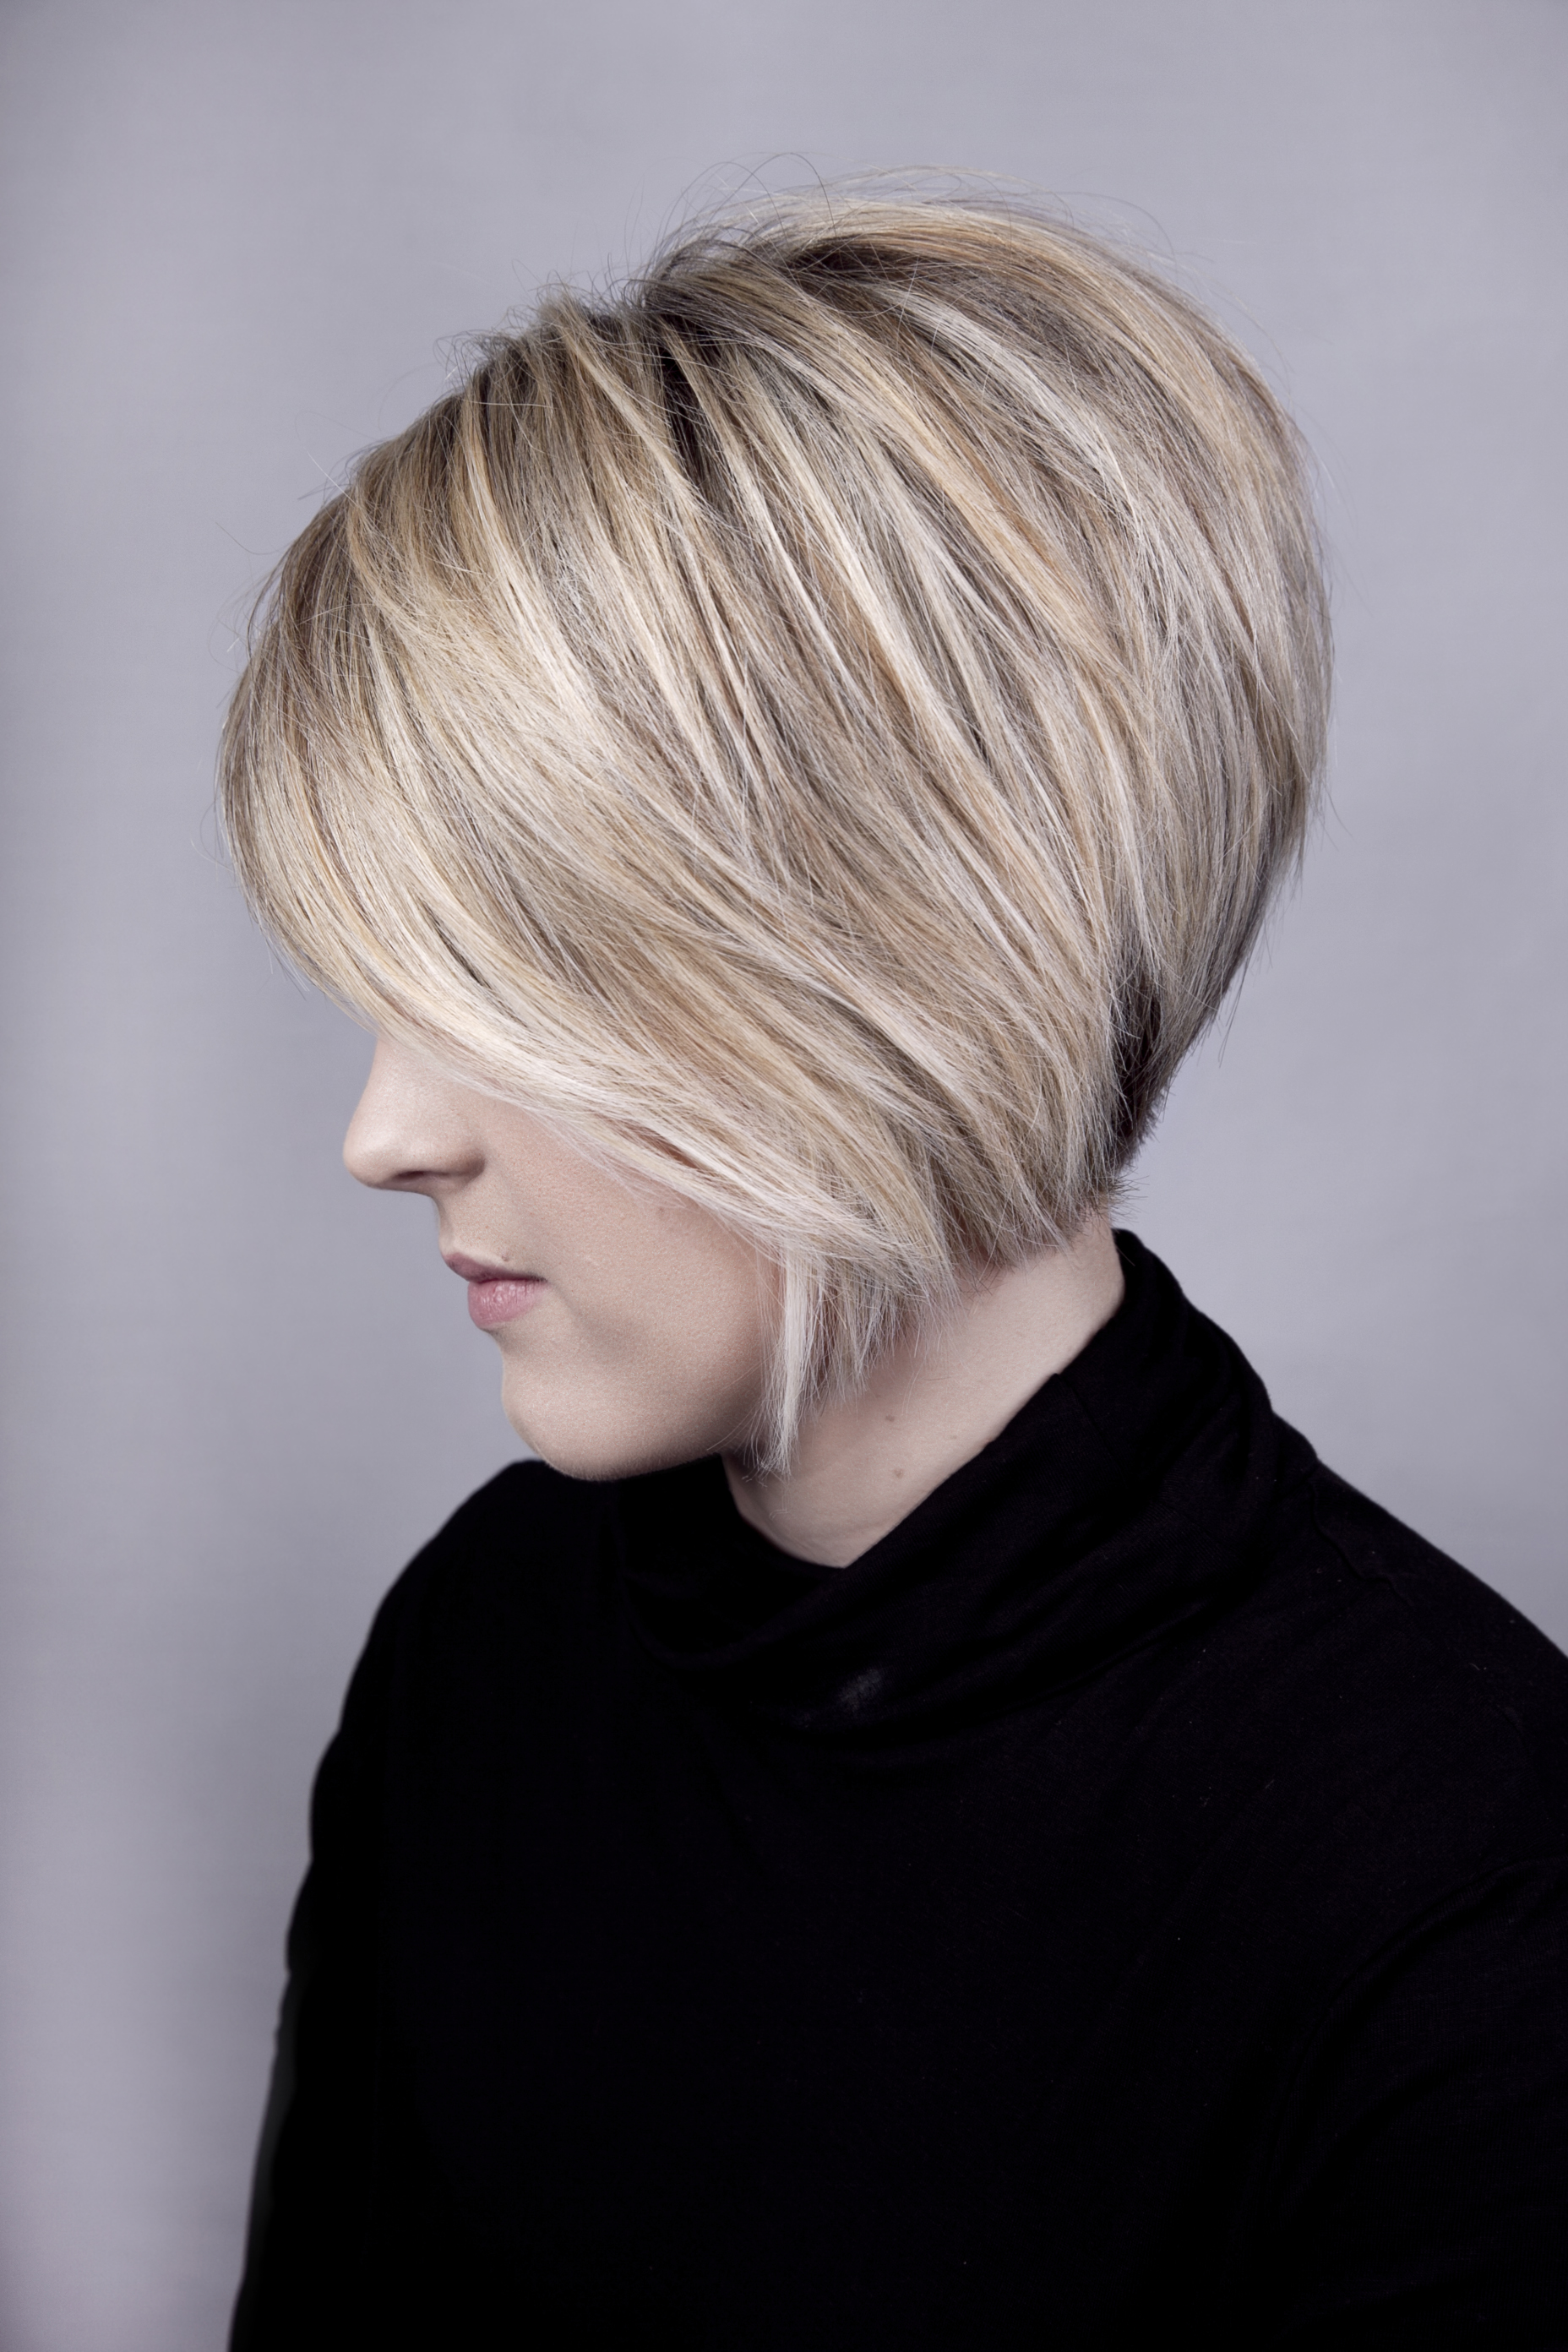 Short graduated blonde bob hair cut